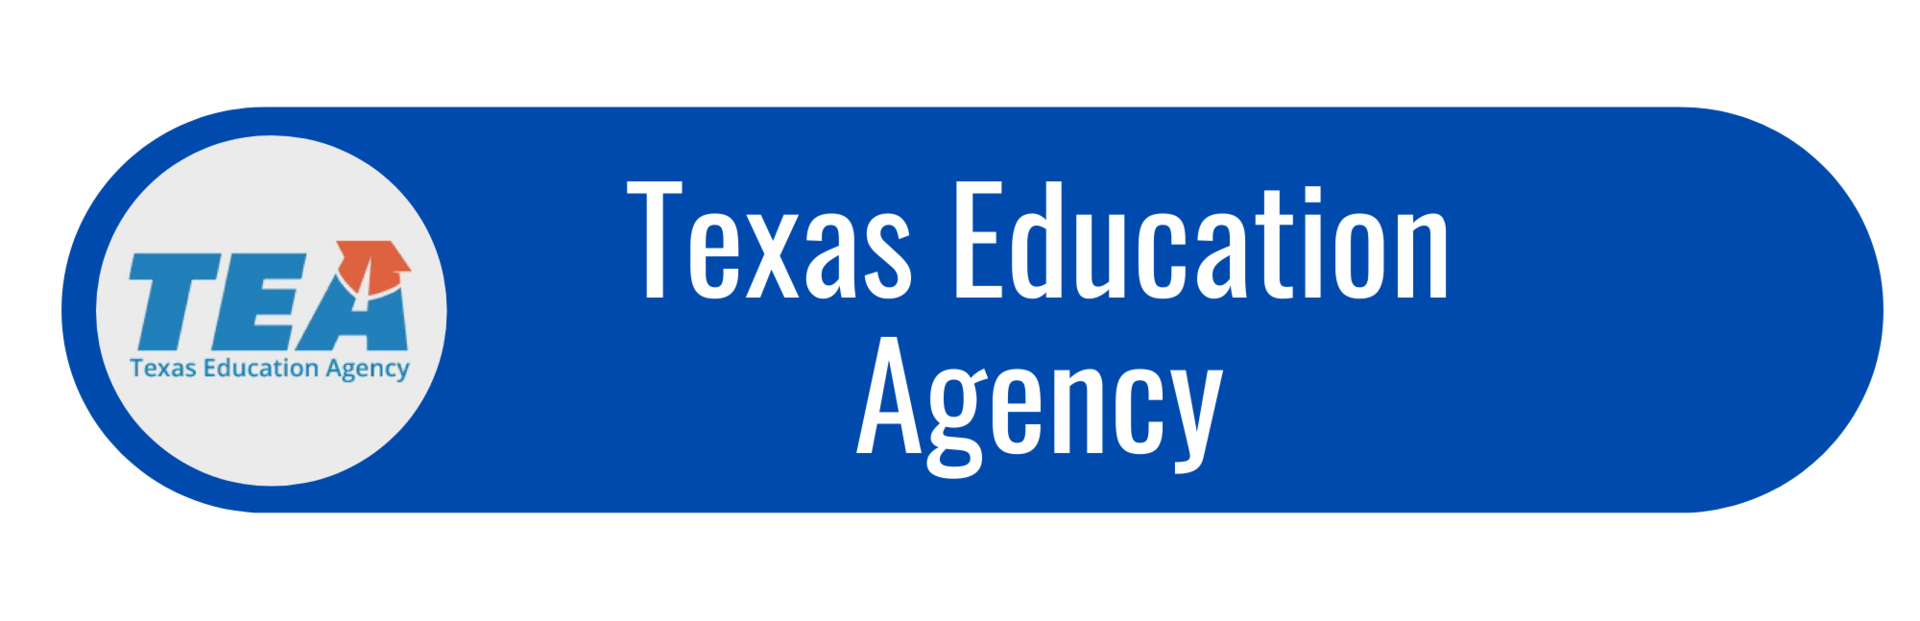 Texas Education Agency Button